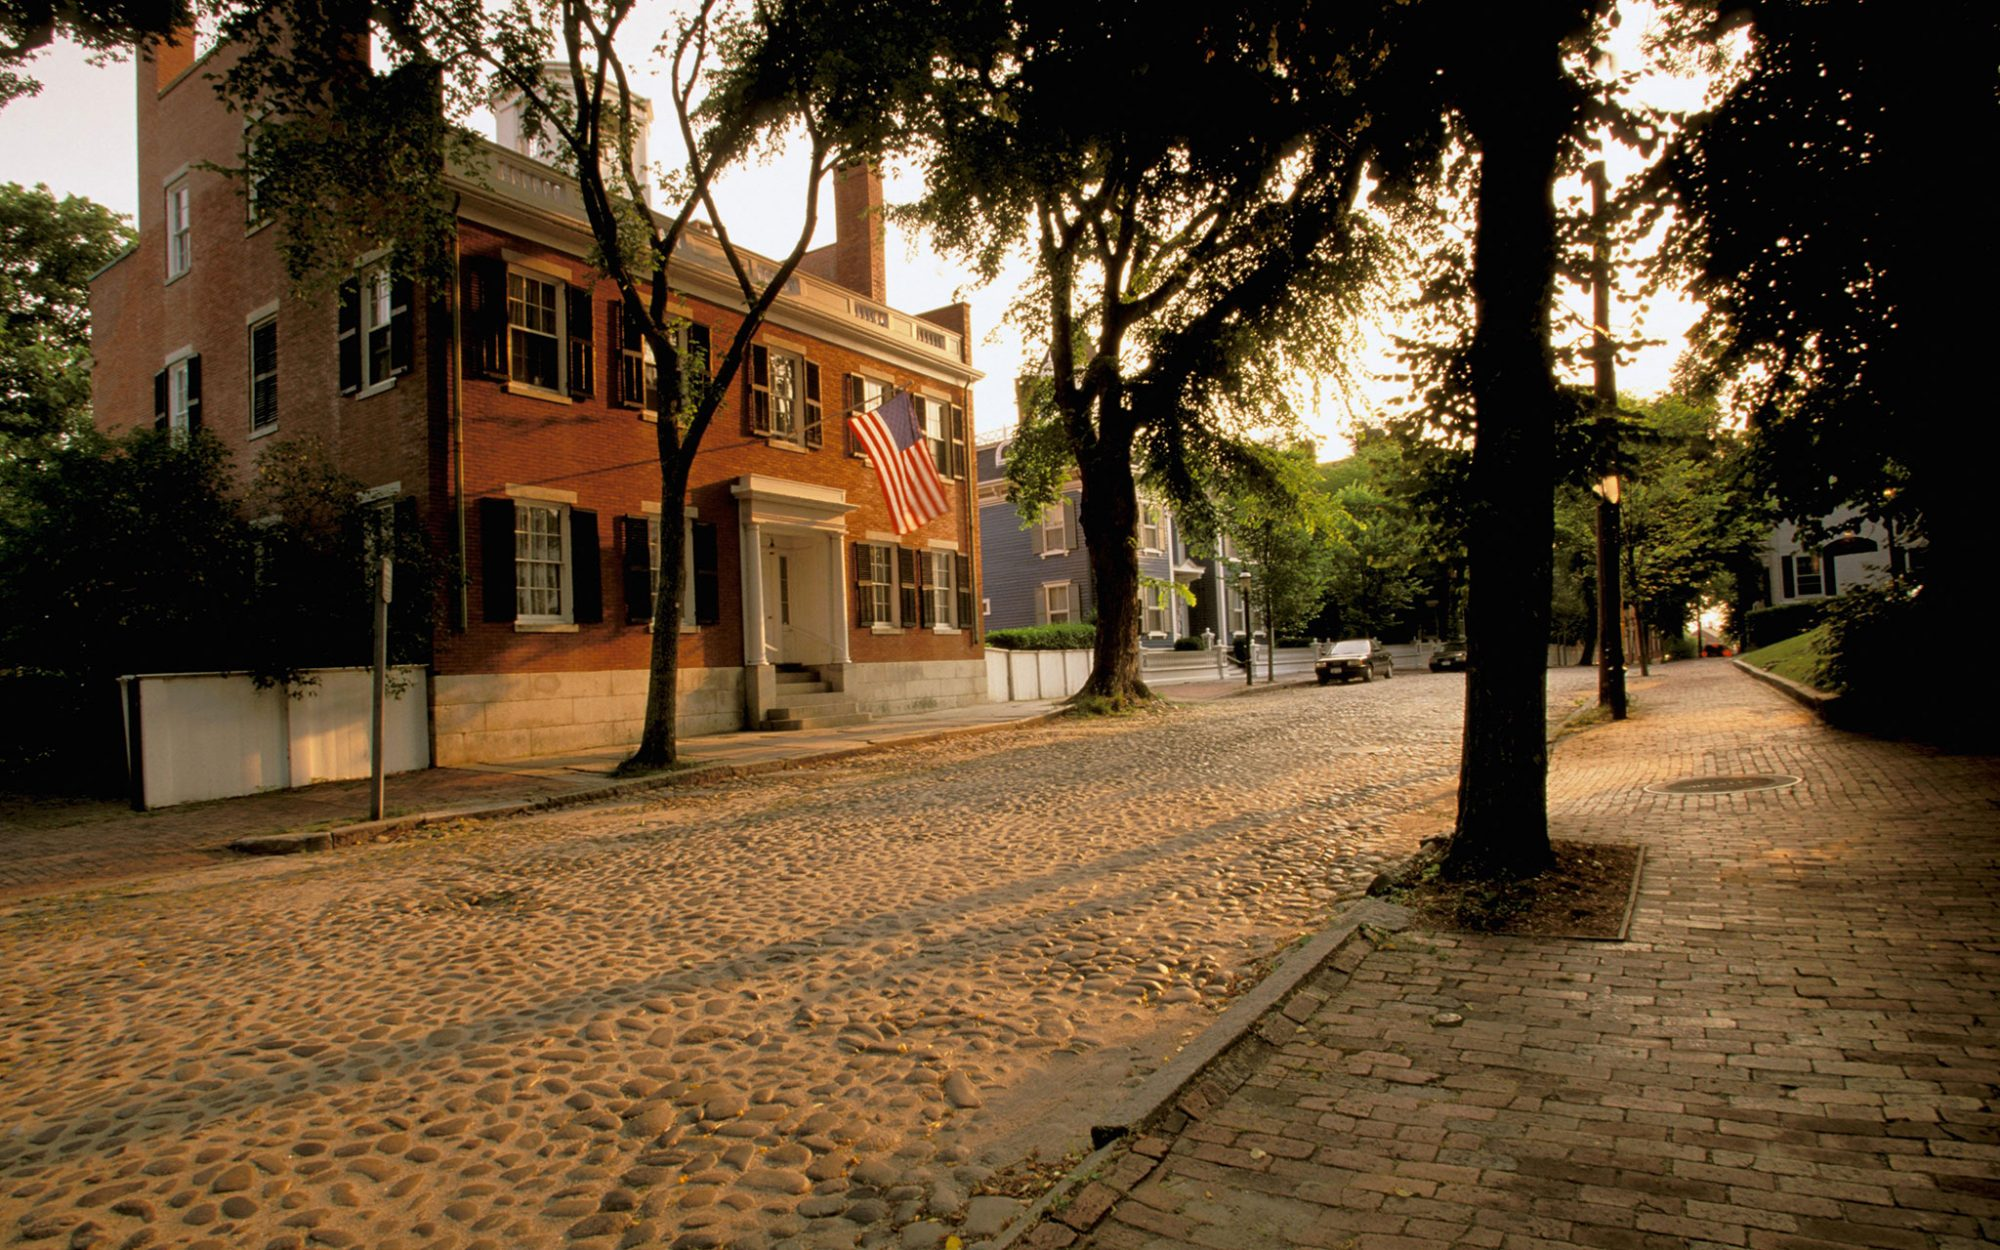 America's greatest main streets: Nantucket